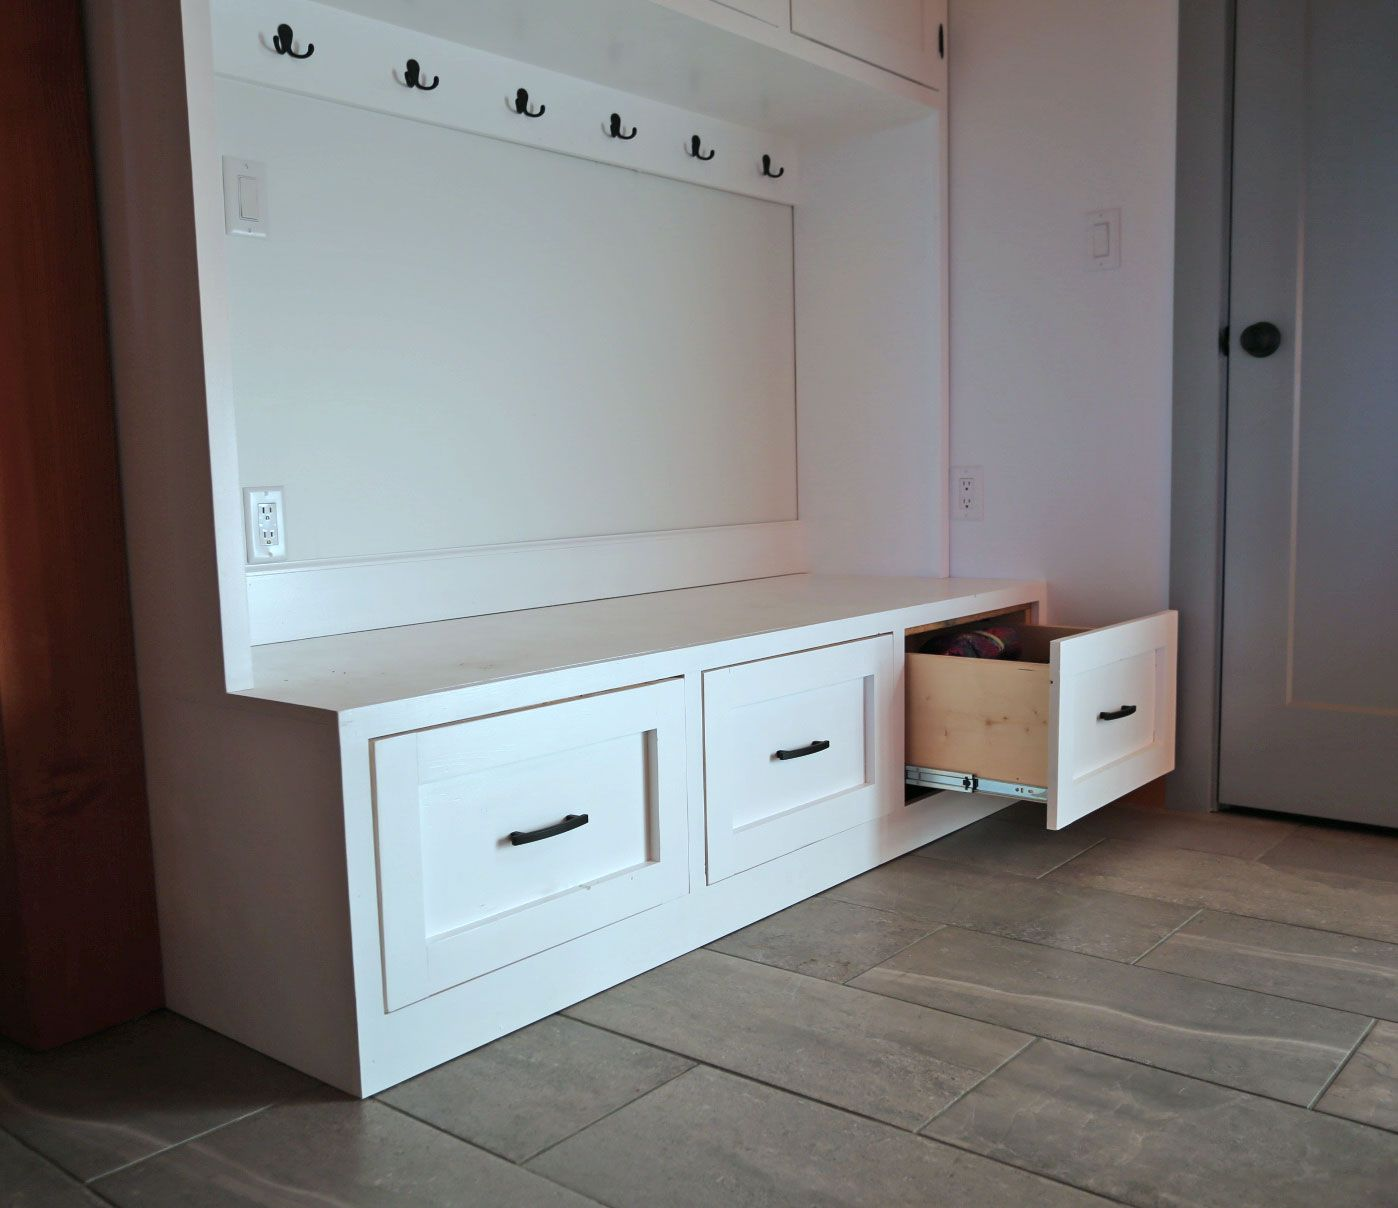 Mudroom Bench With Easy Drawers Diy Mudroom Bench Diy Storage Bench Bench With Drawers